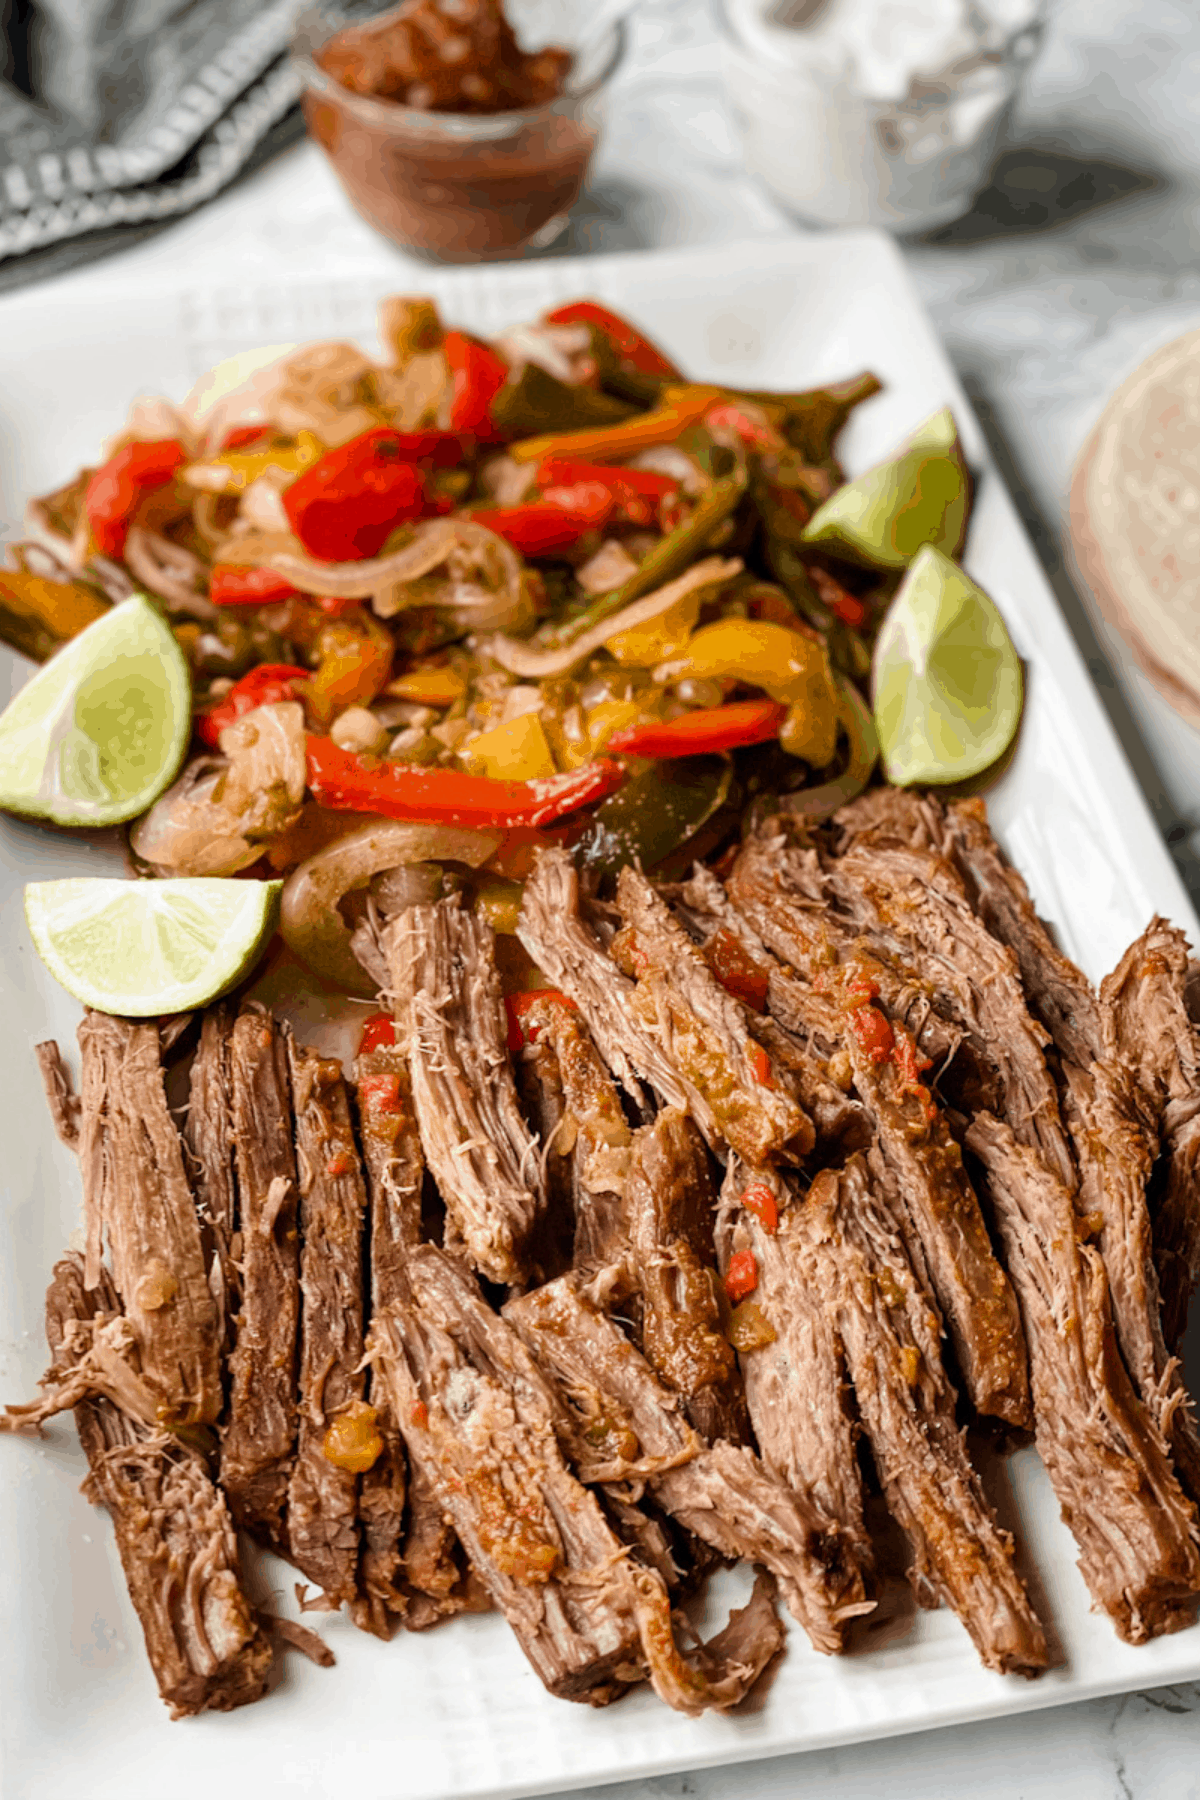 Sliced flank steak to use for fajitas on a white platter with onions and peppers.